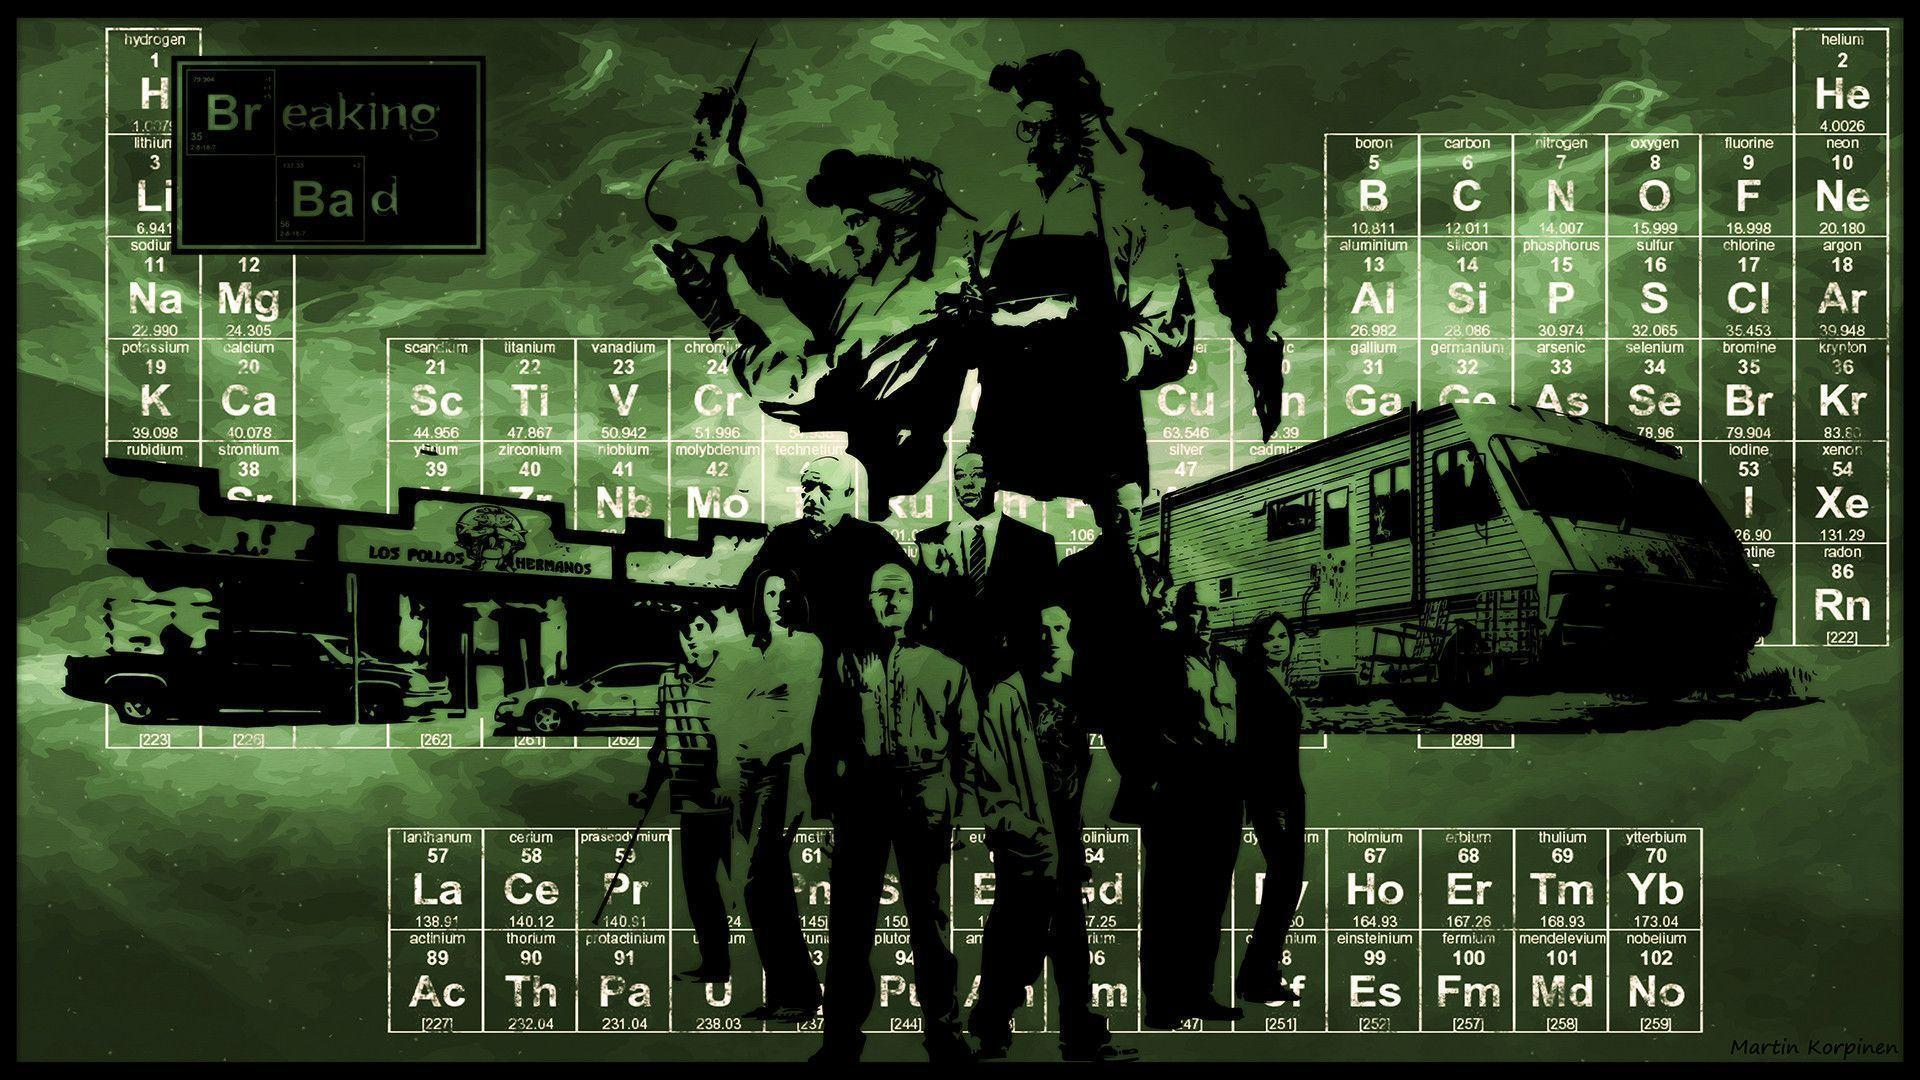 breaking bad 50 wallpapers - photo #2